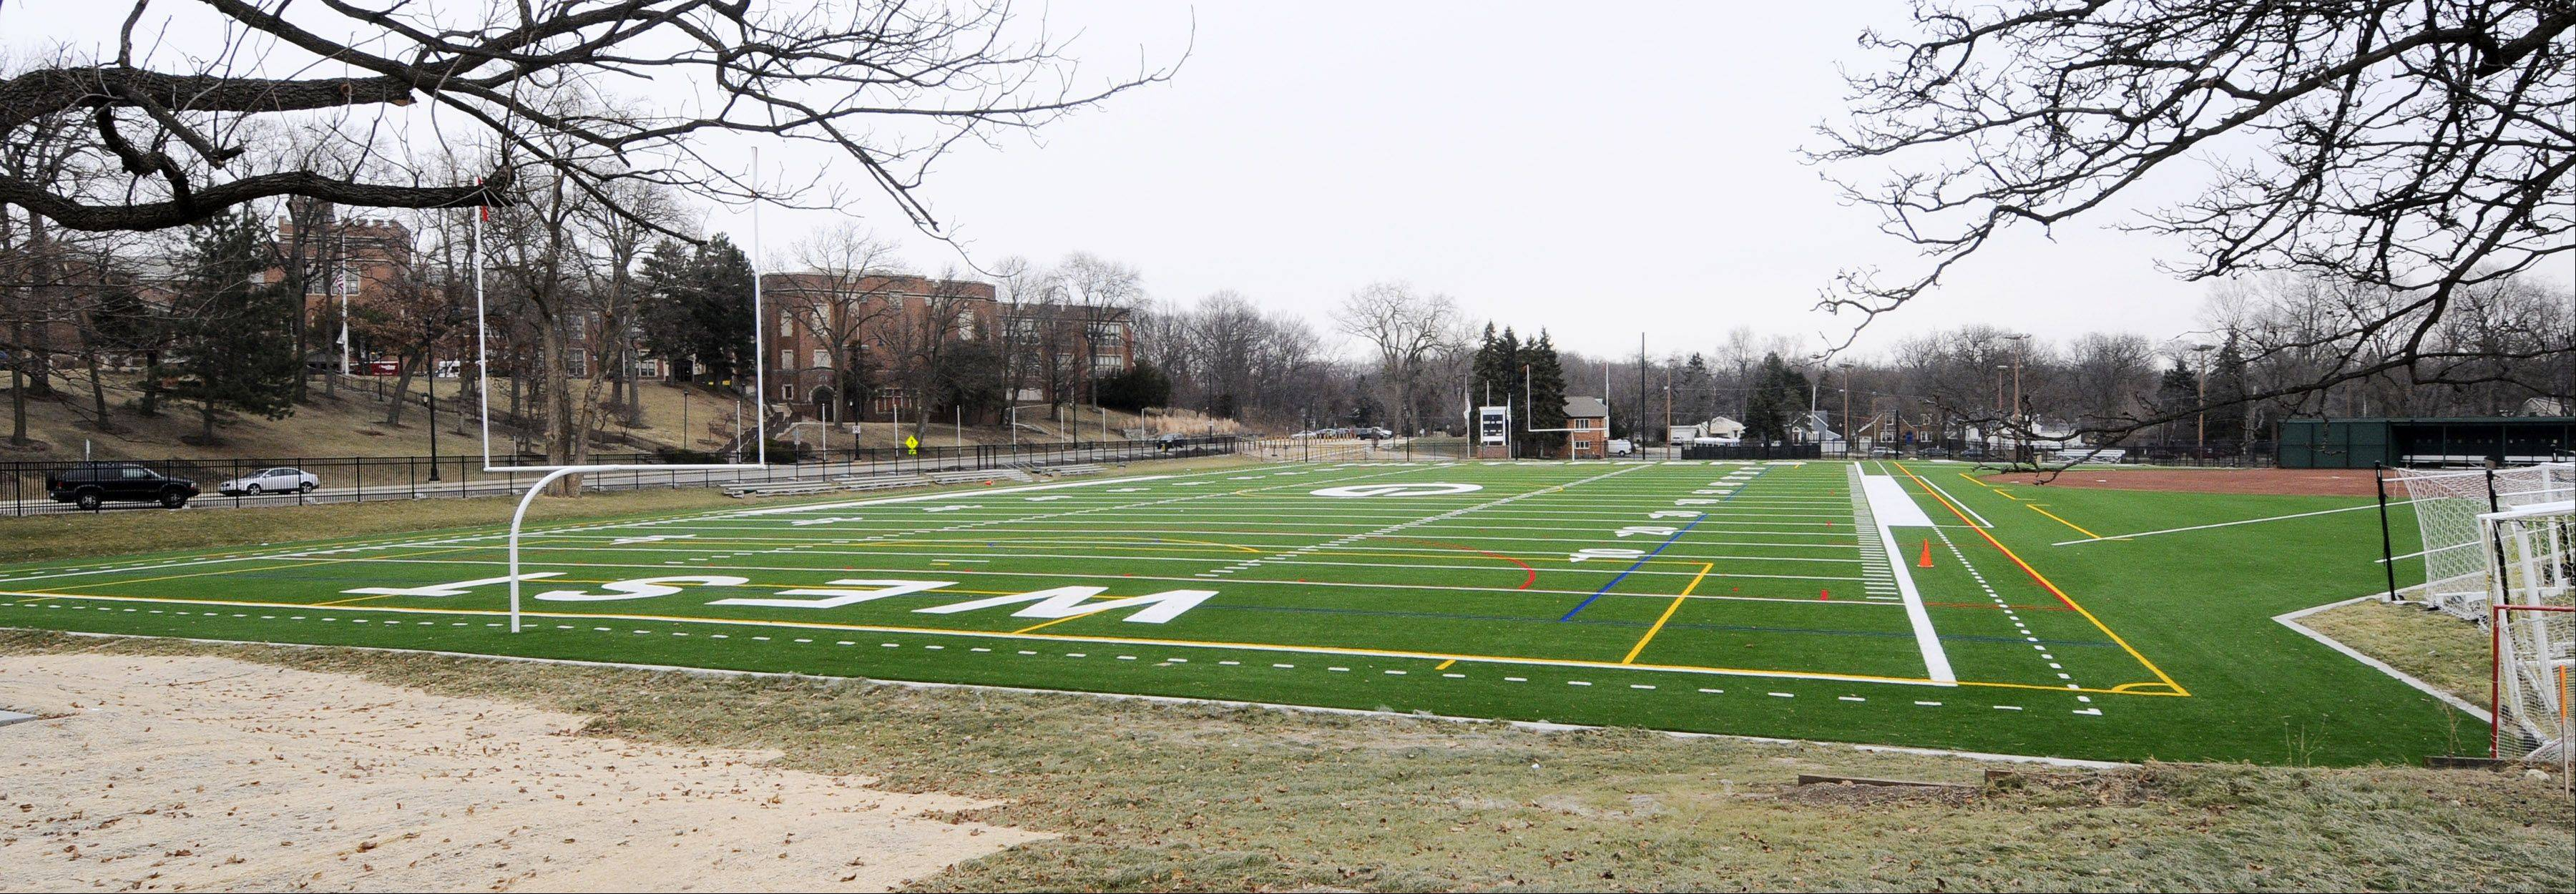 Opponents of a plan to install lights at Memorial Field, across from Glenbard West High School in Glen Ellyn, have filed petitions that call for a villagewide referendum on the issue.